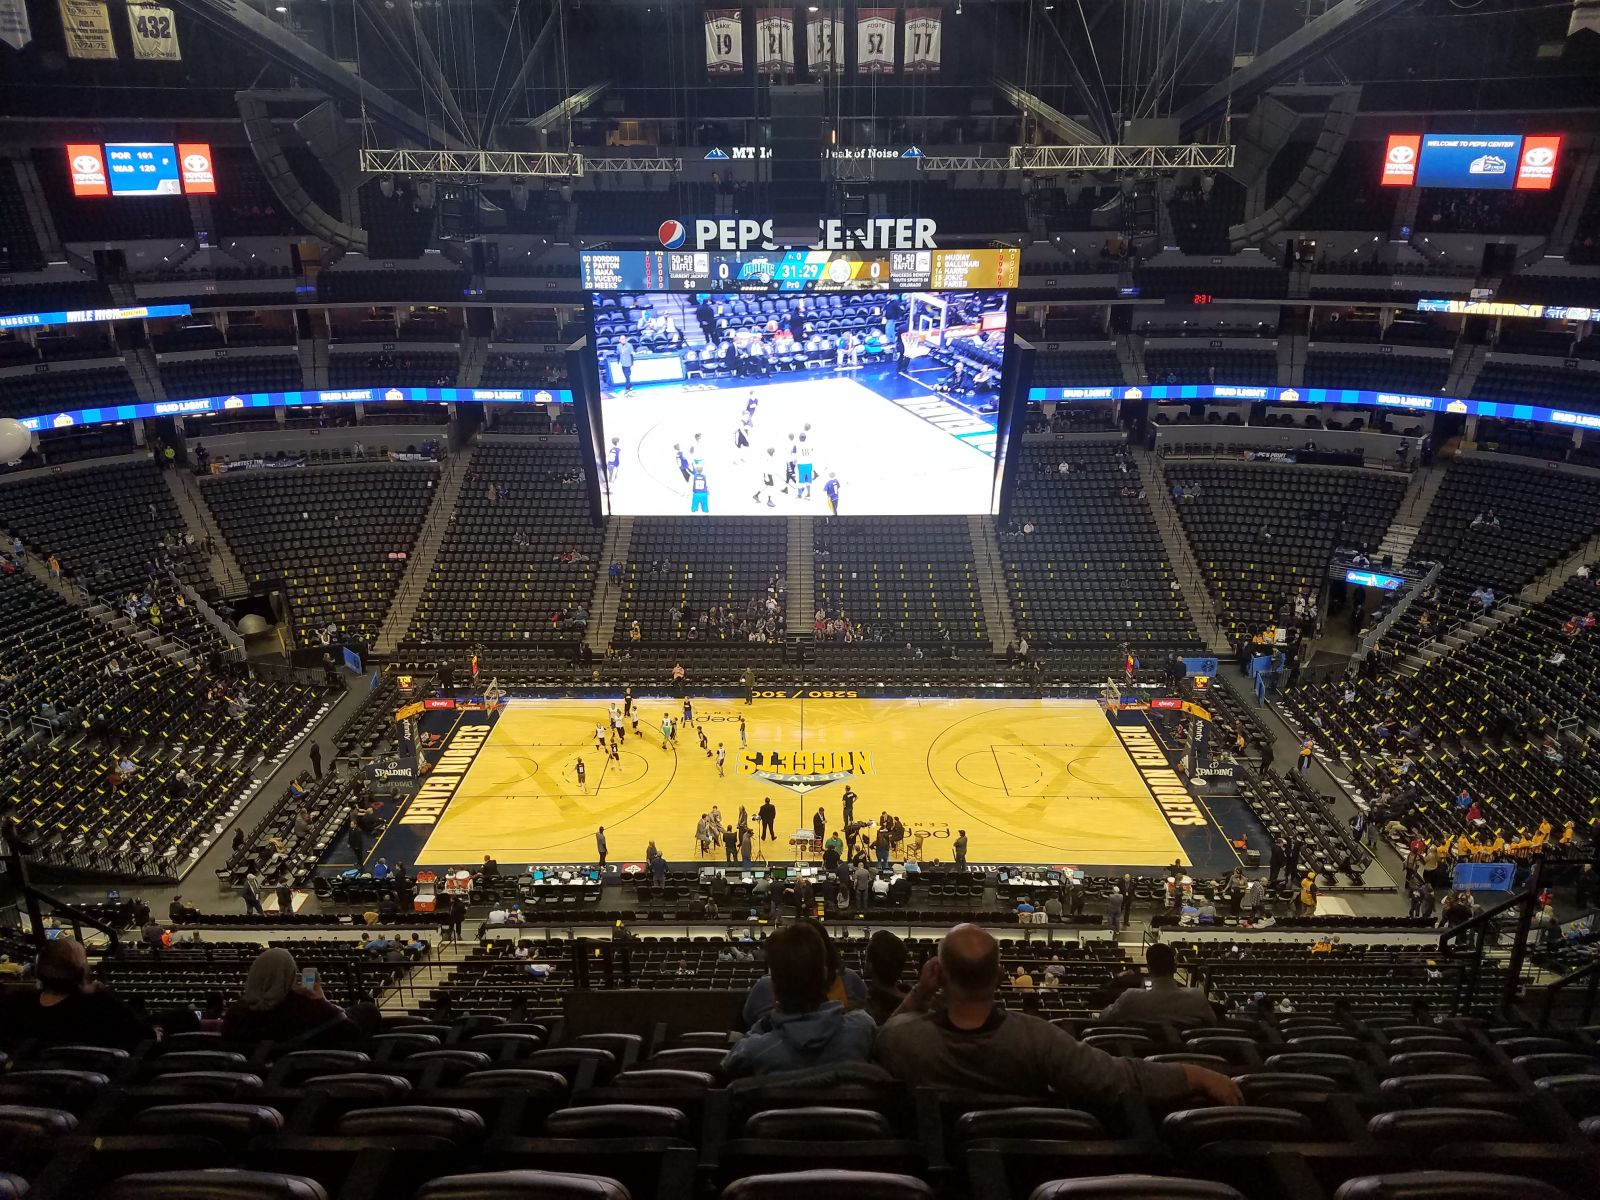 Denver Nuggets Seat View for Pepsi Center Section 302, Row 12, Seat 10